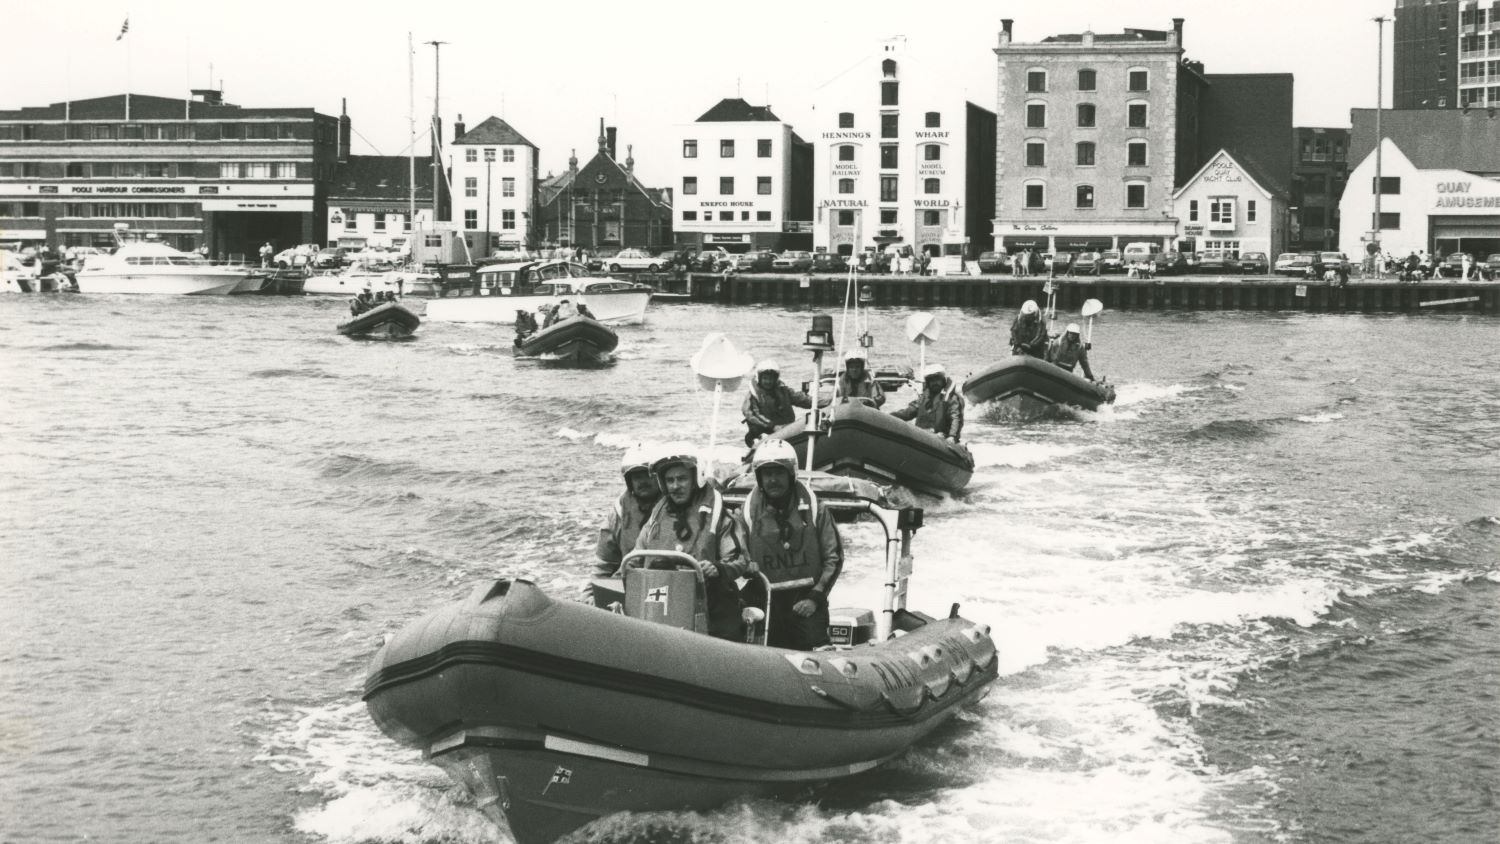 Black and white image of five inshore lifeboats